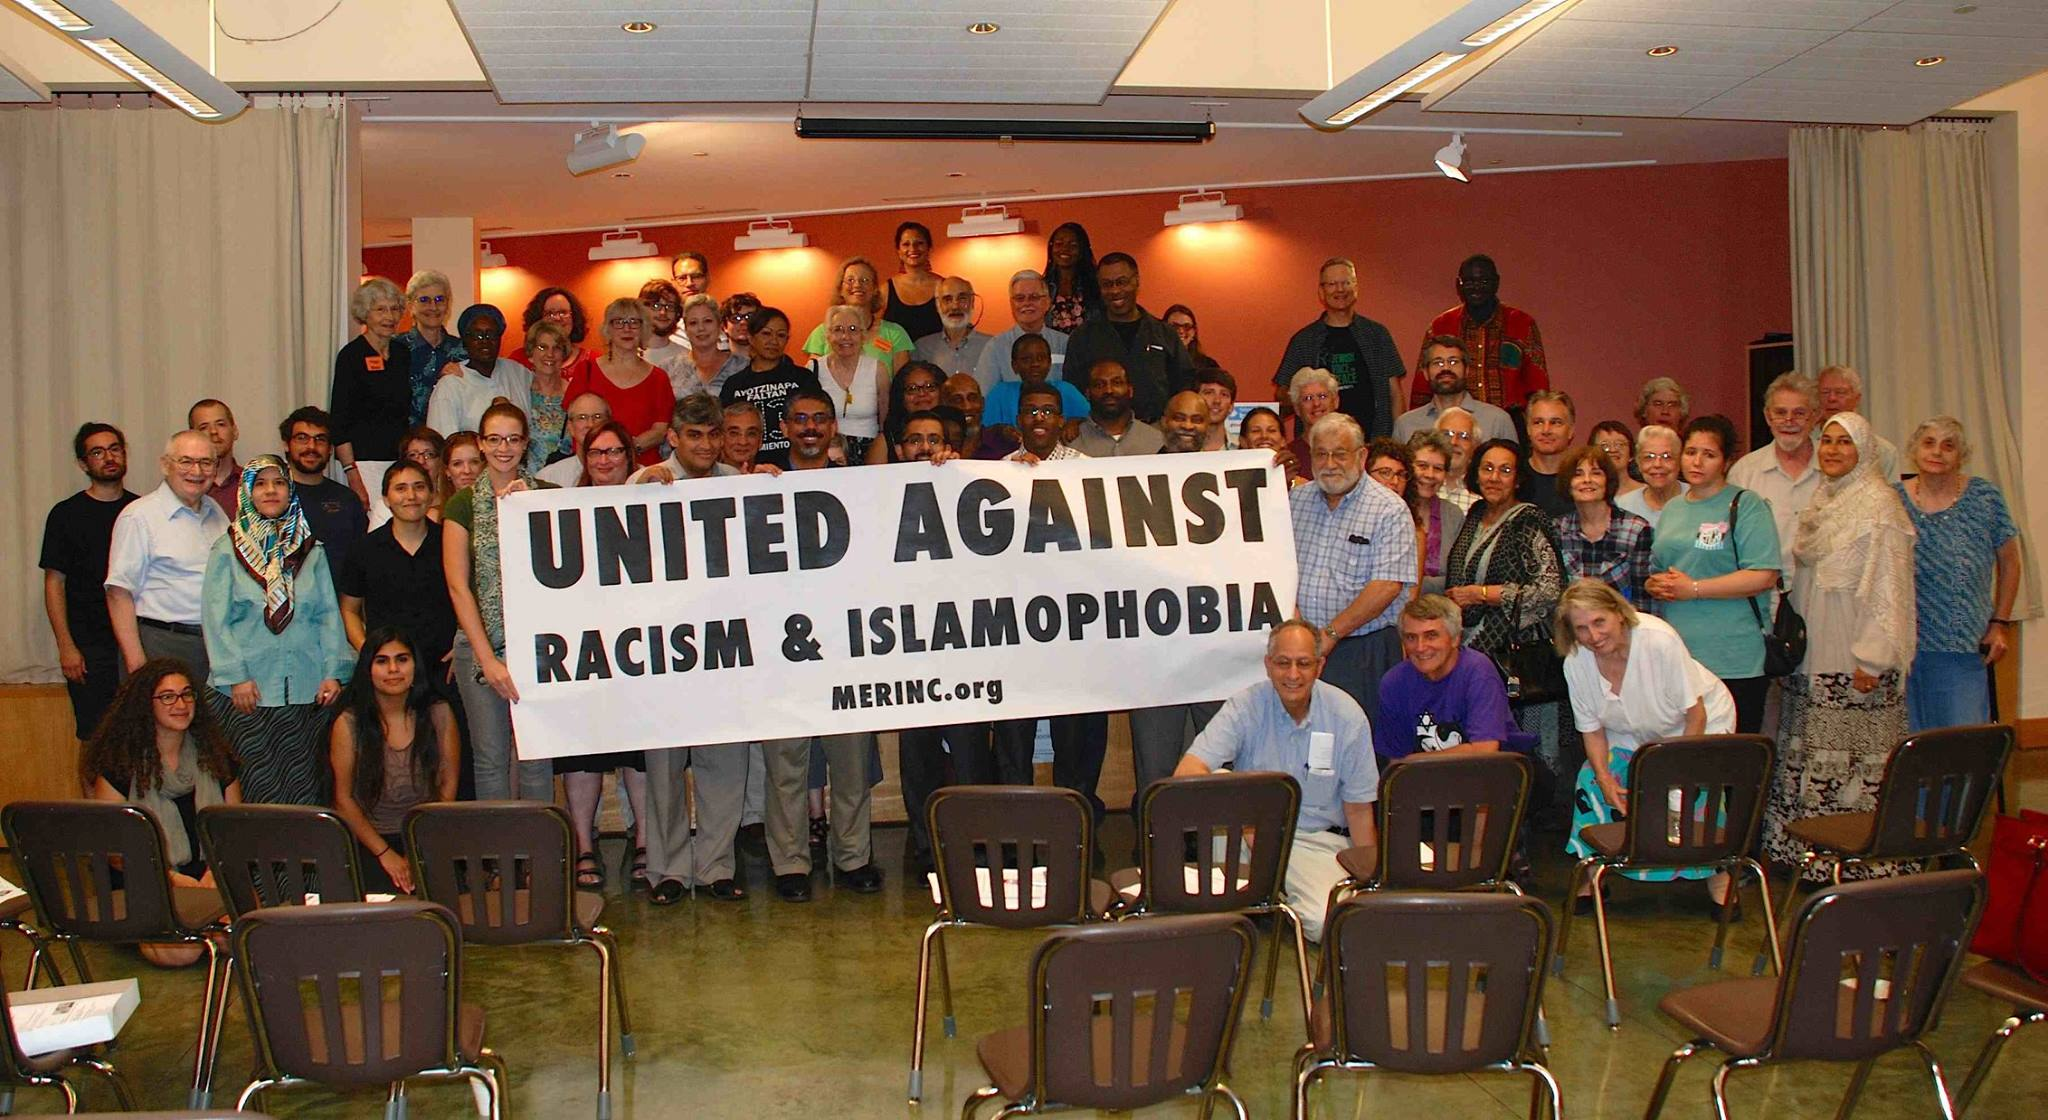 Movement to End Racism and Islamophobia    Movement to End Islamophobia and Racism is a network of organizations dedicated to ending racism, Islamophobia and all forms of oppression.